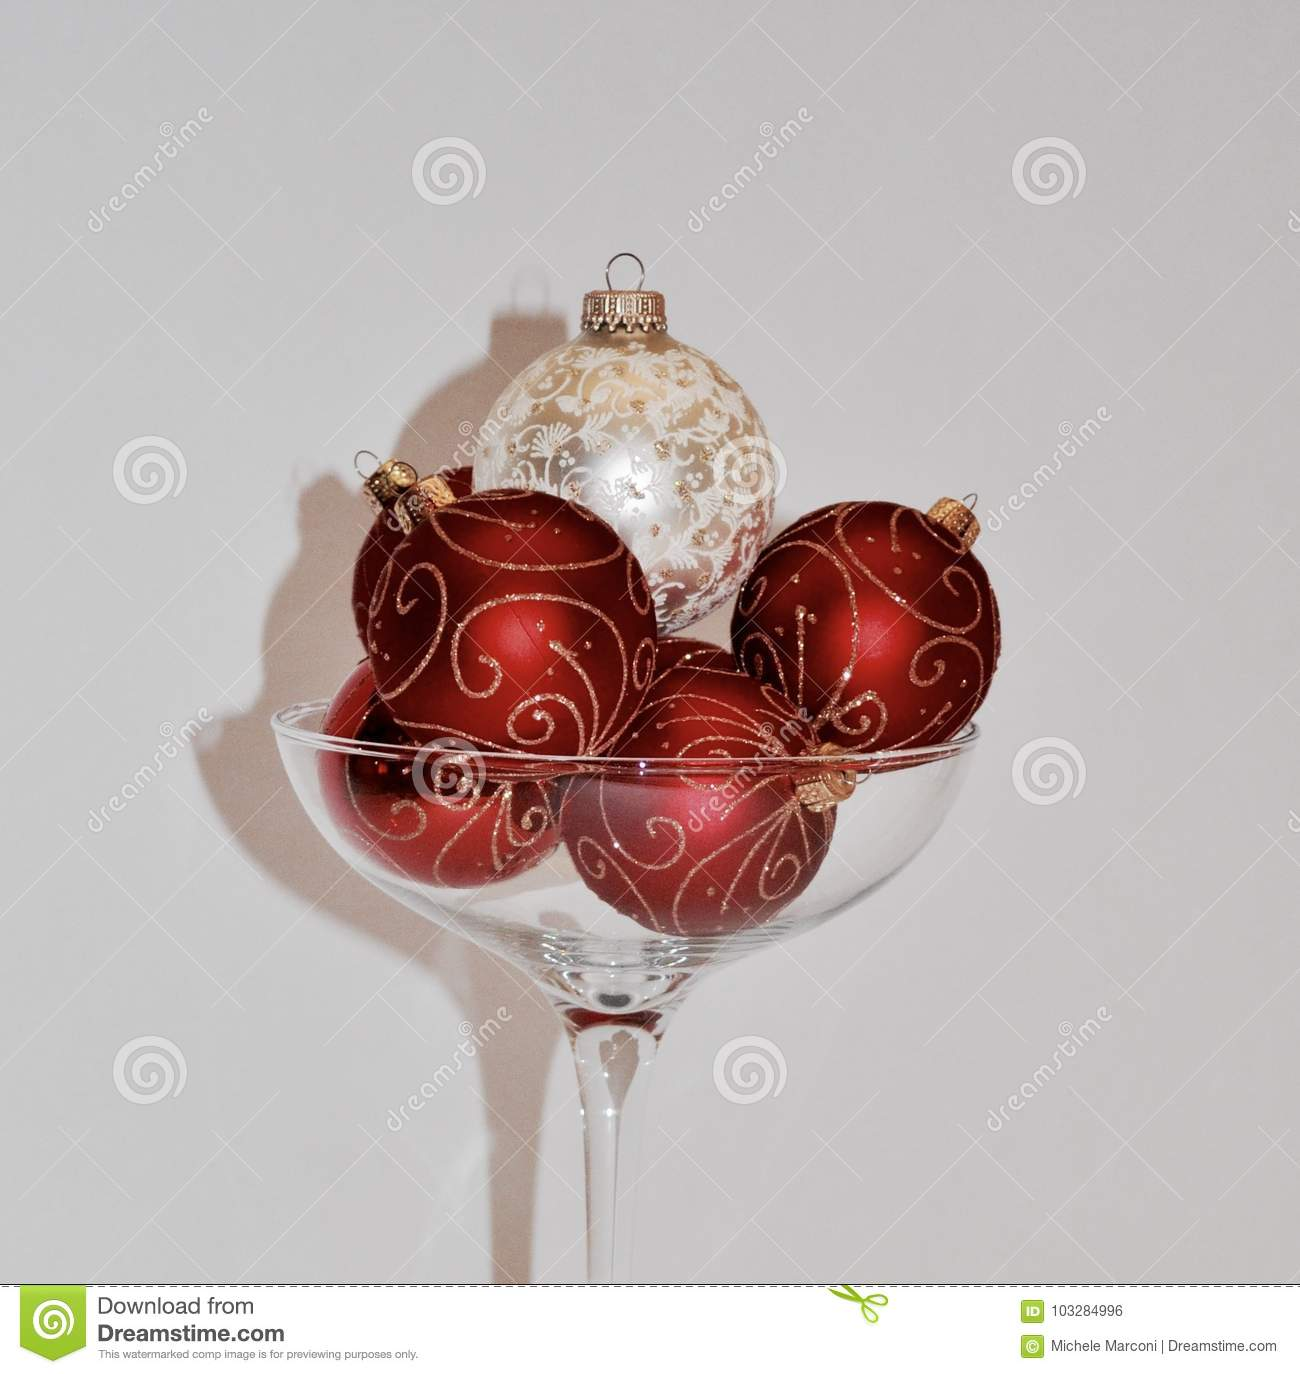 download christmas ornaments in over sized champagne glass stock photo image of glass